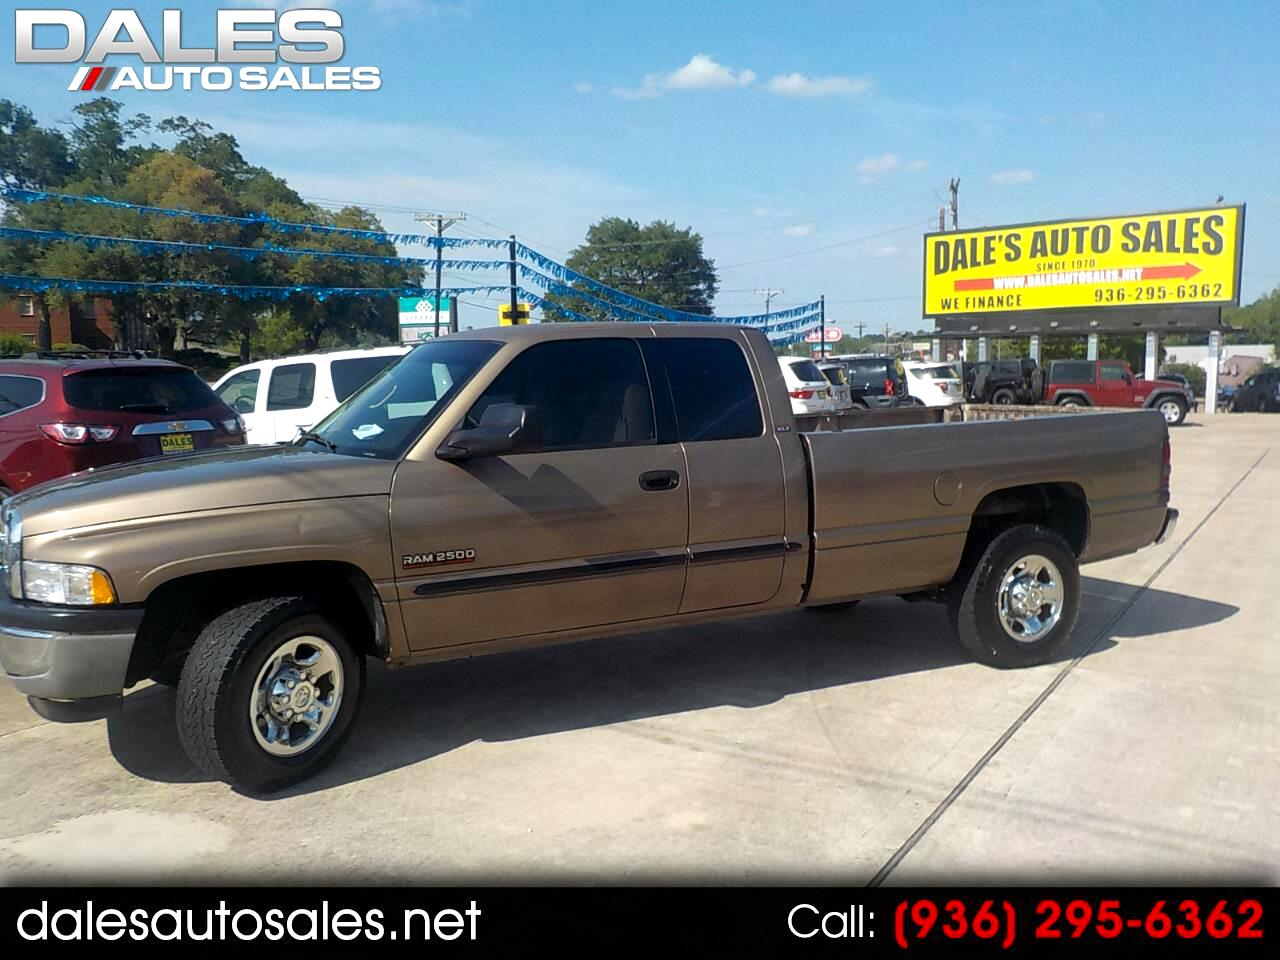 "Dodge Ram 2500 4dr Quad Cab 139"" WB HD 2001"